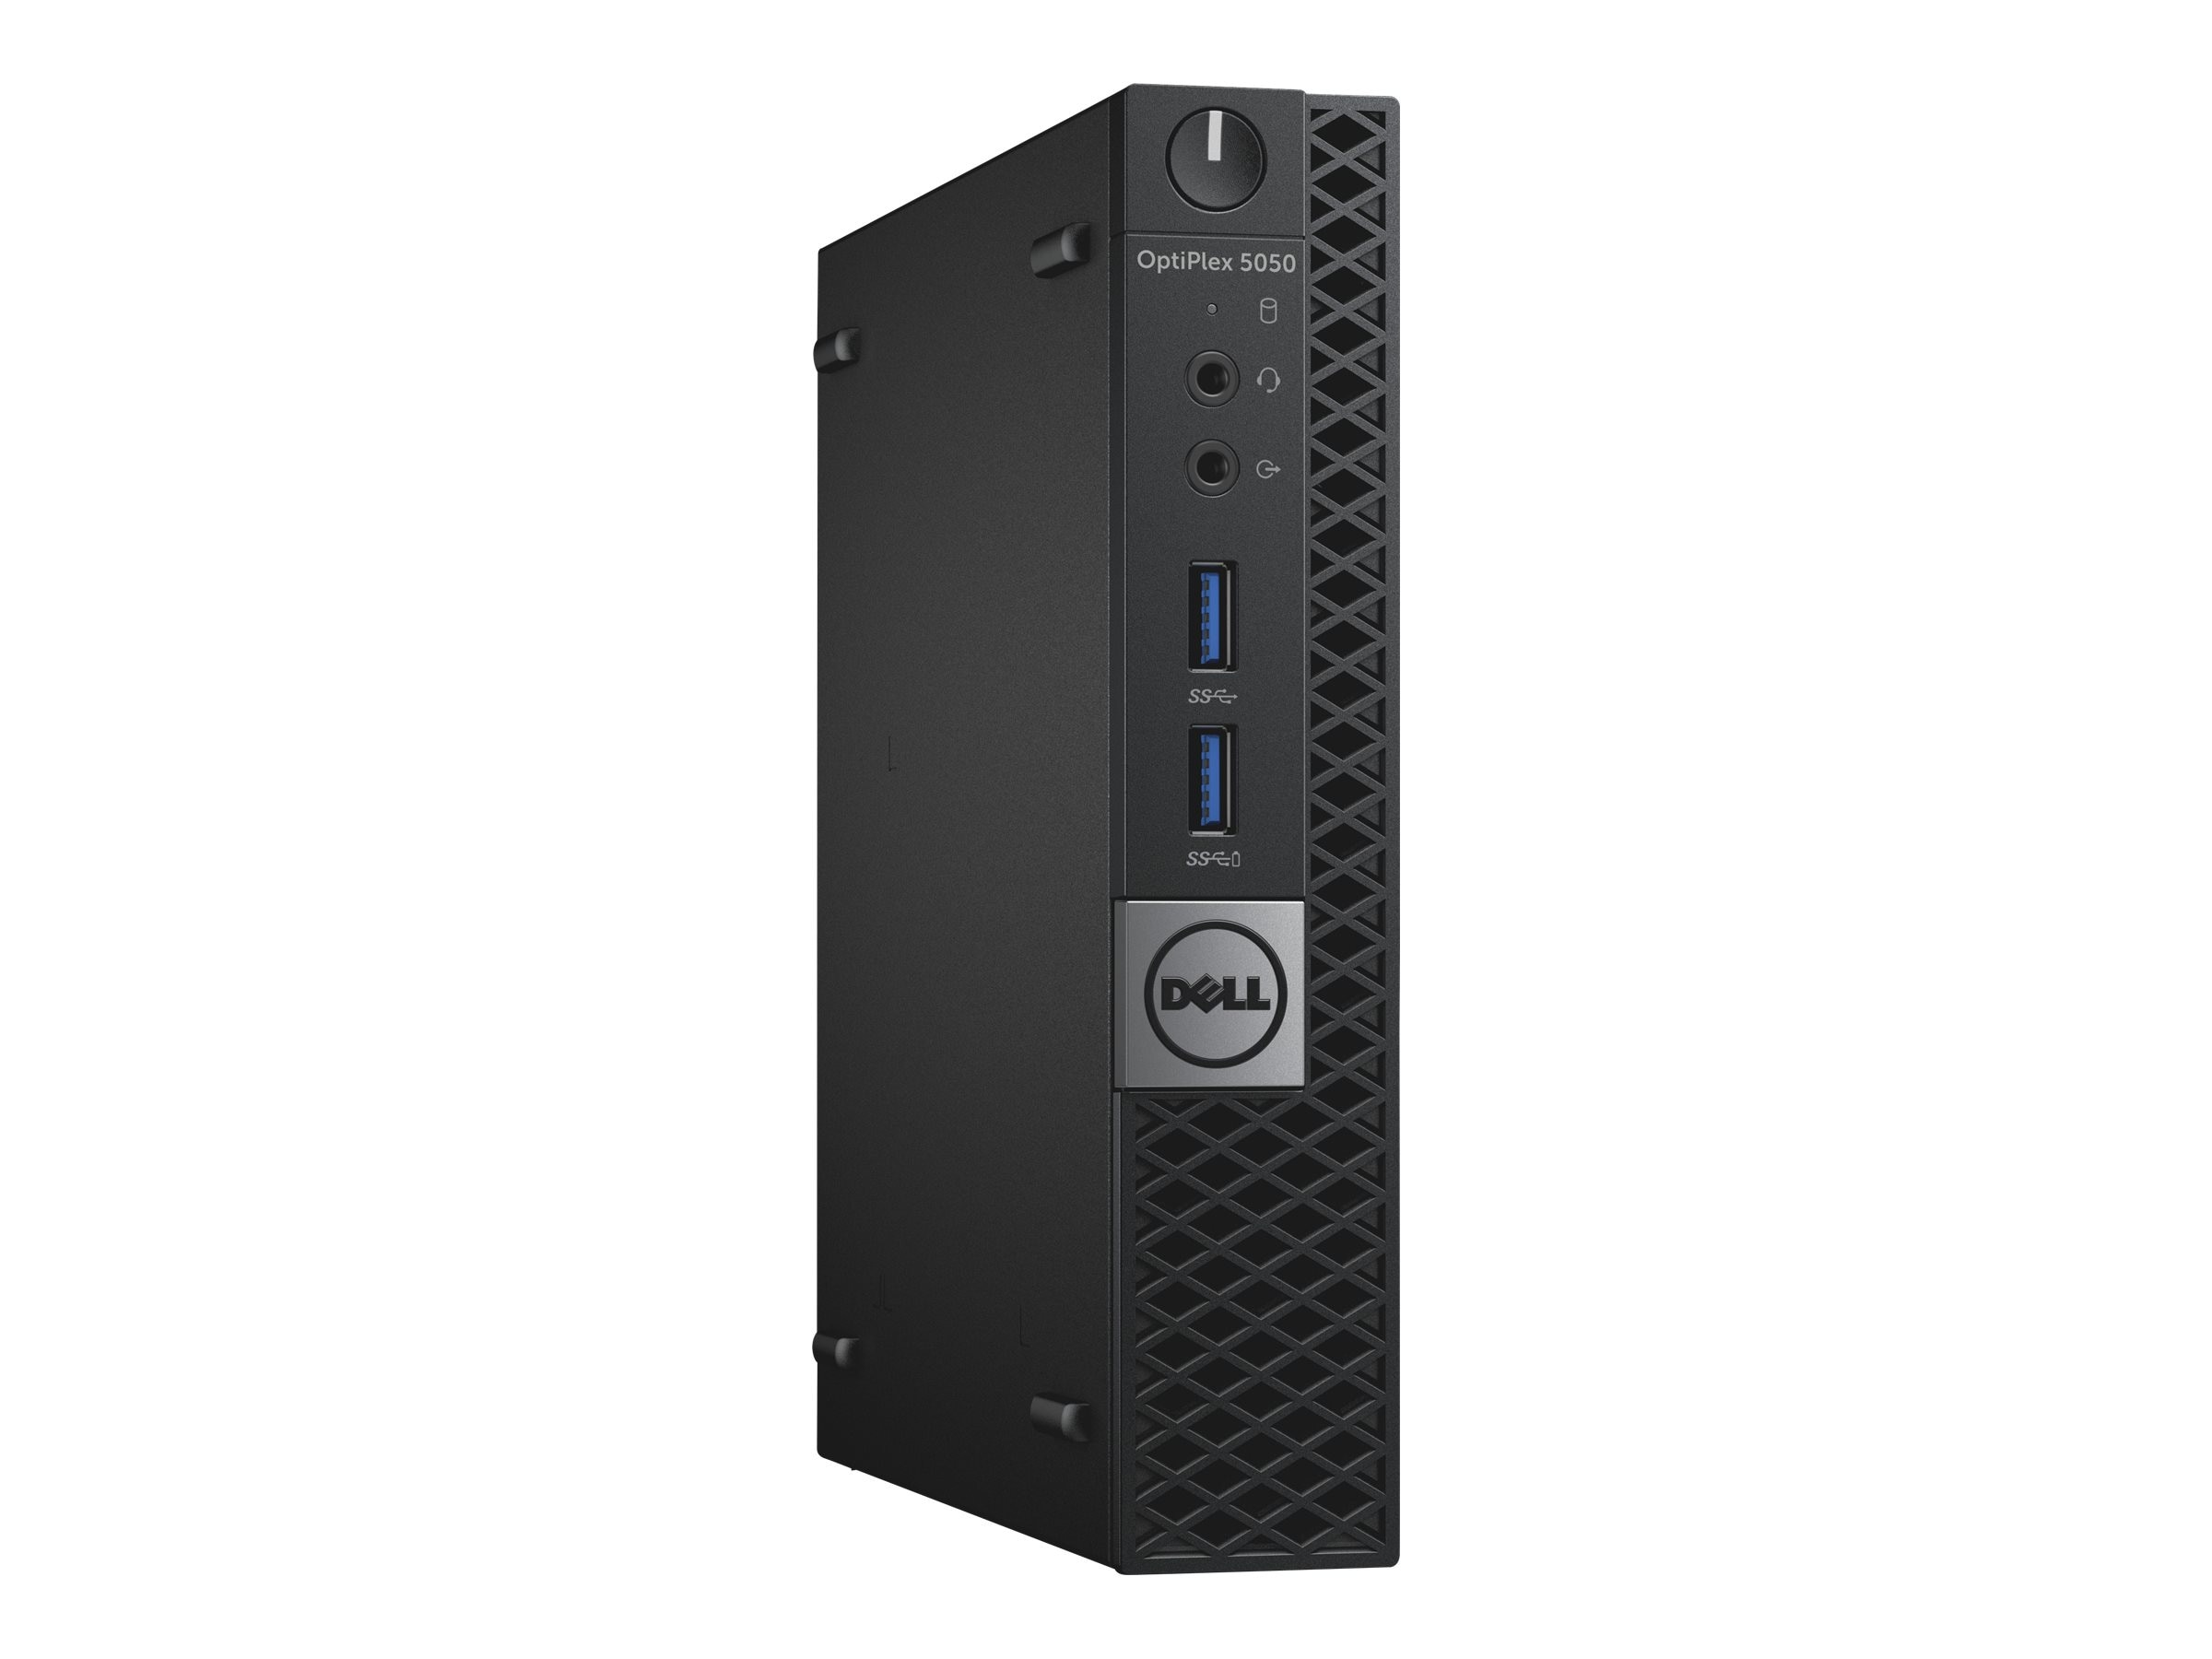 intel hd graphics 2000 driver for windows 10 64 bit dell